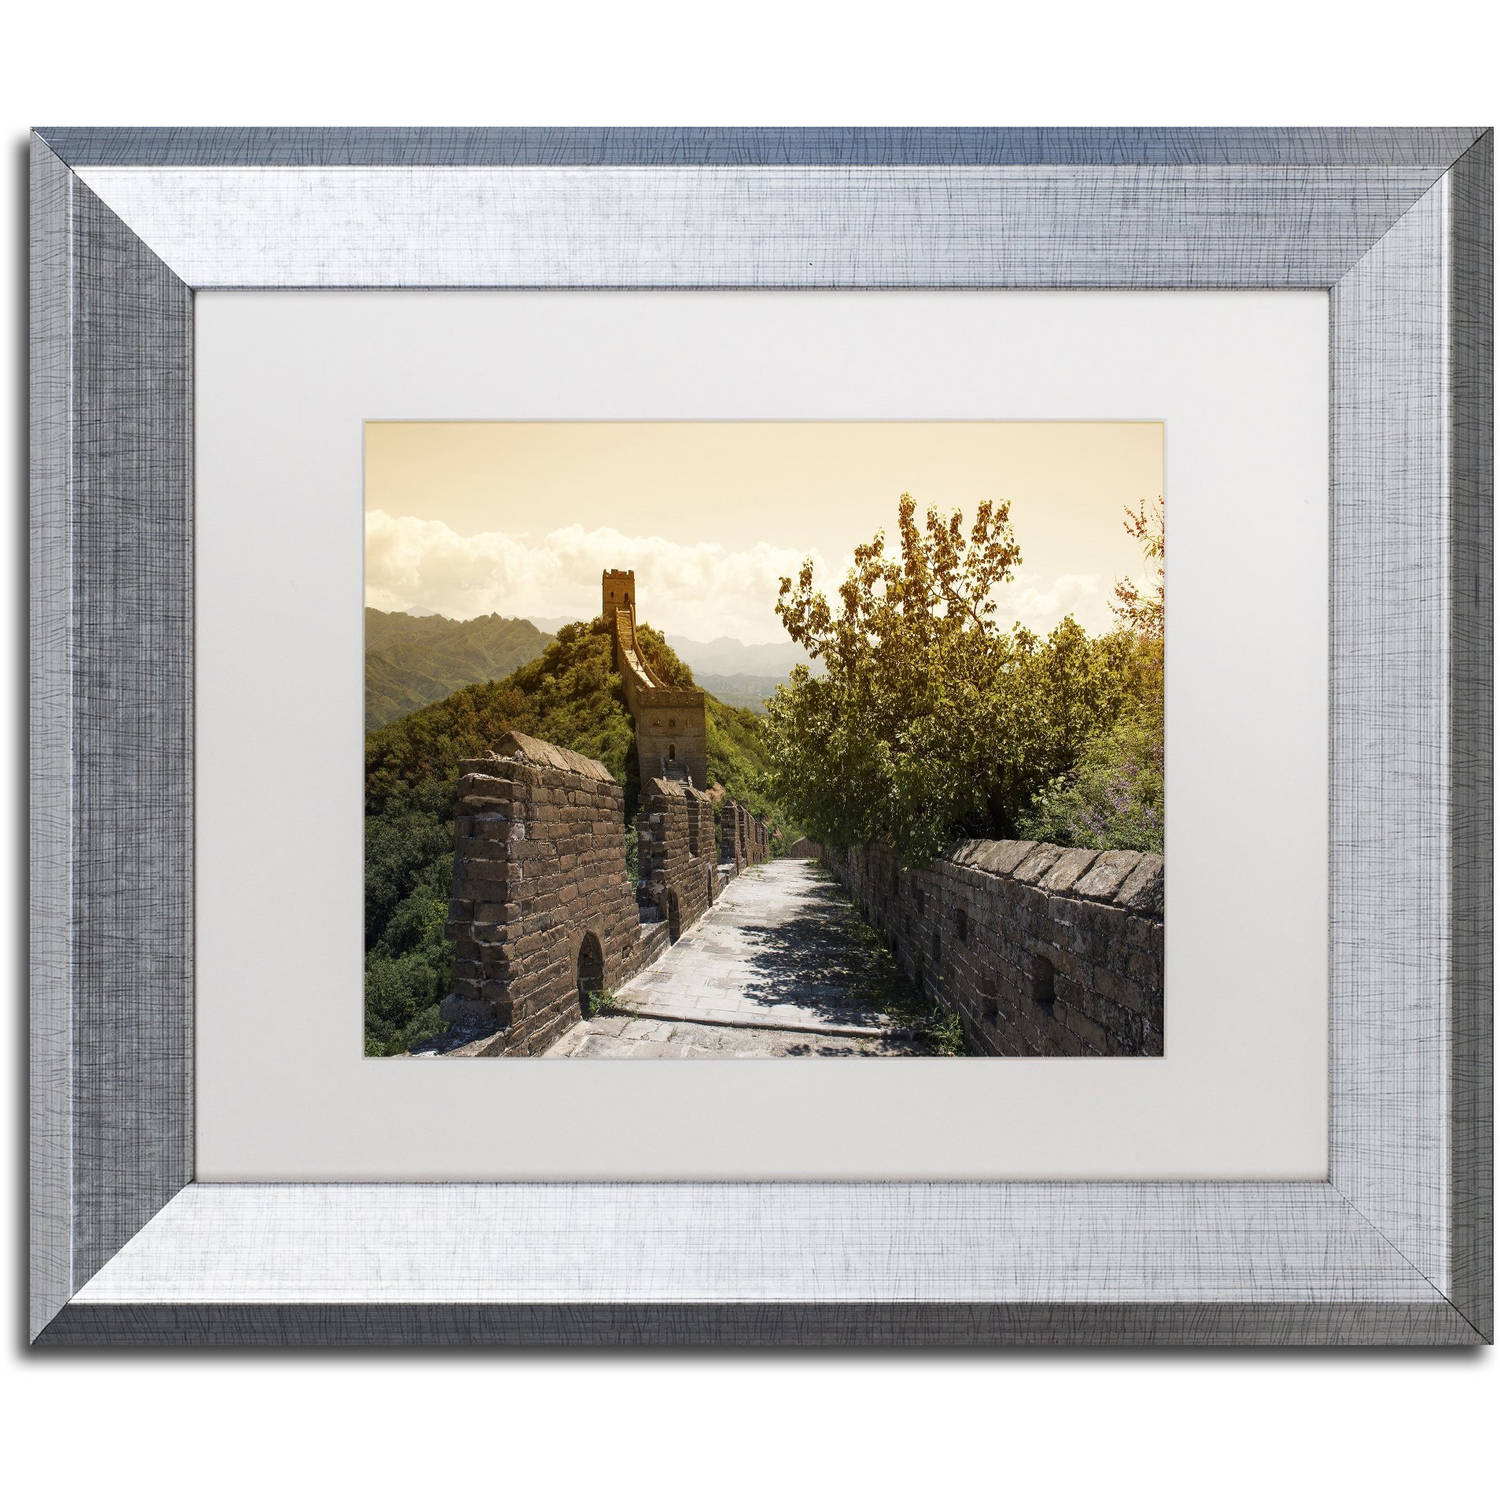 "Trademark Fine Art ""Great Wall III"" Canvas Art by Philippe Hugonnard, White Matte, Silver Frame"